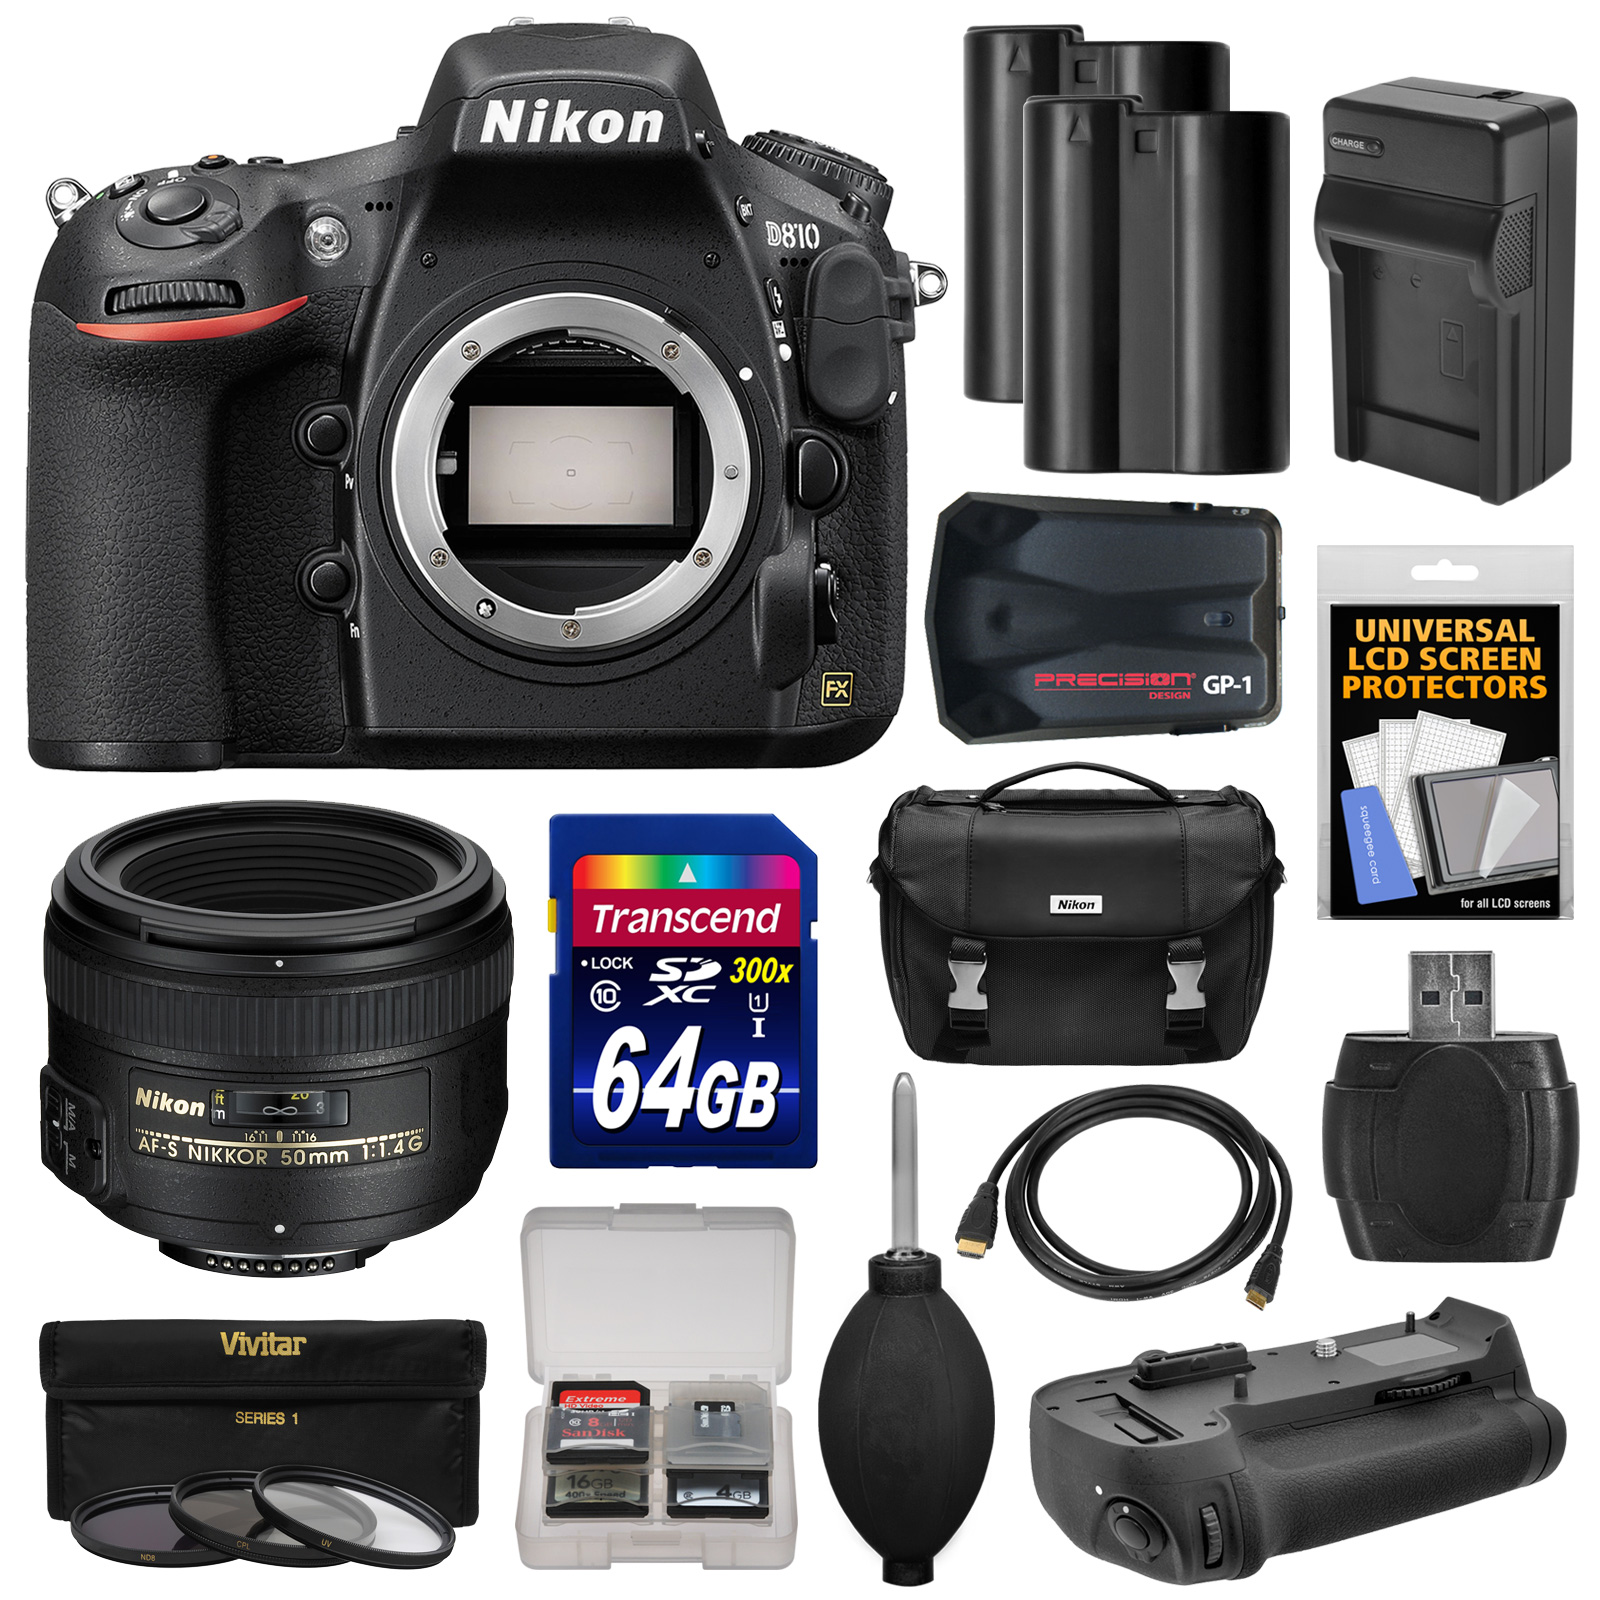 Nikon D810 Digital SLR Camera Body with 50mm f 1.4 Lens + 64GB Card + 2 Batteries + Charger + Case + GPS... by Nikon